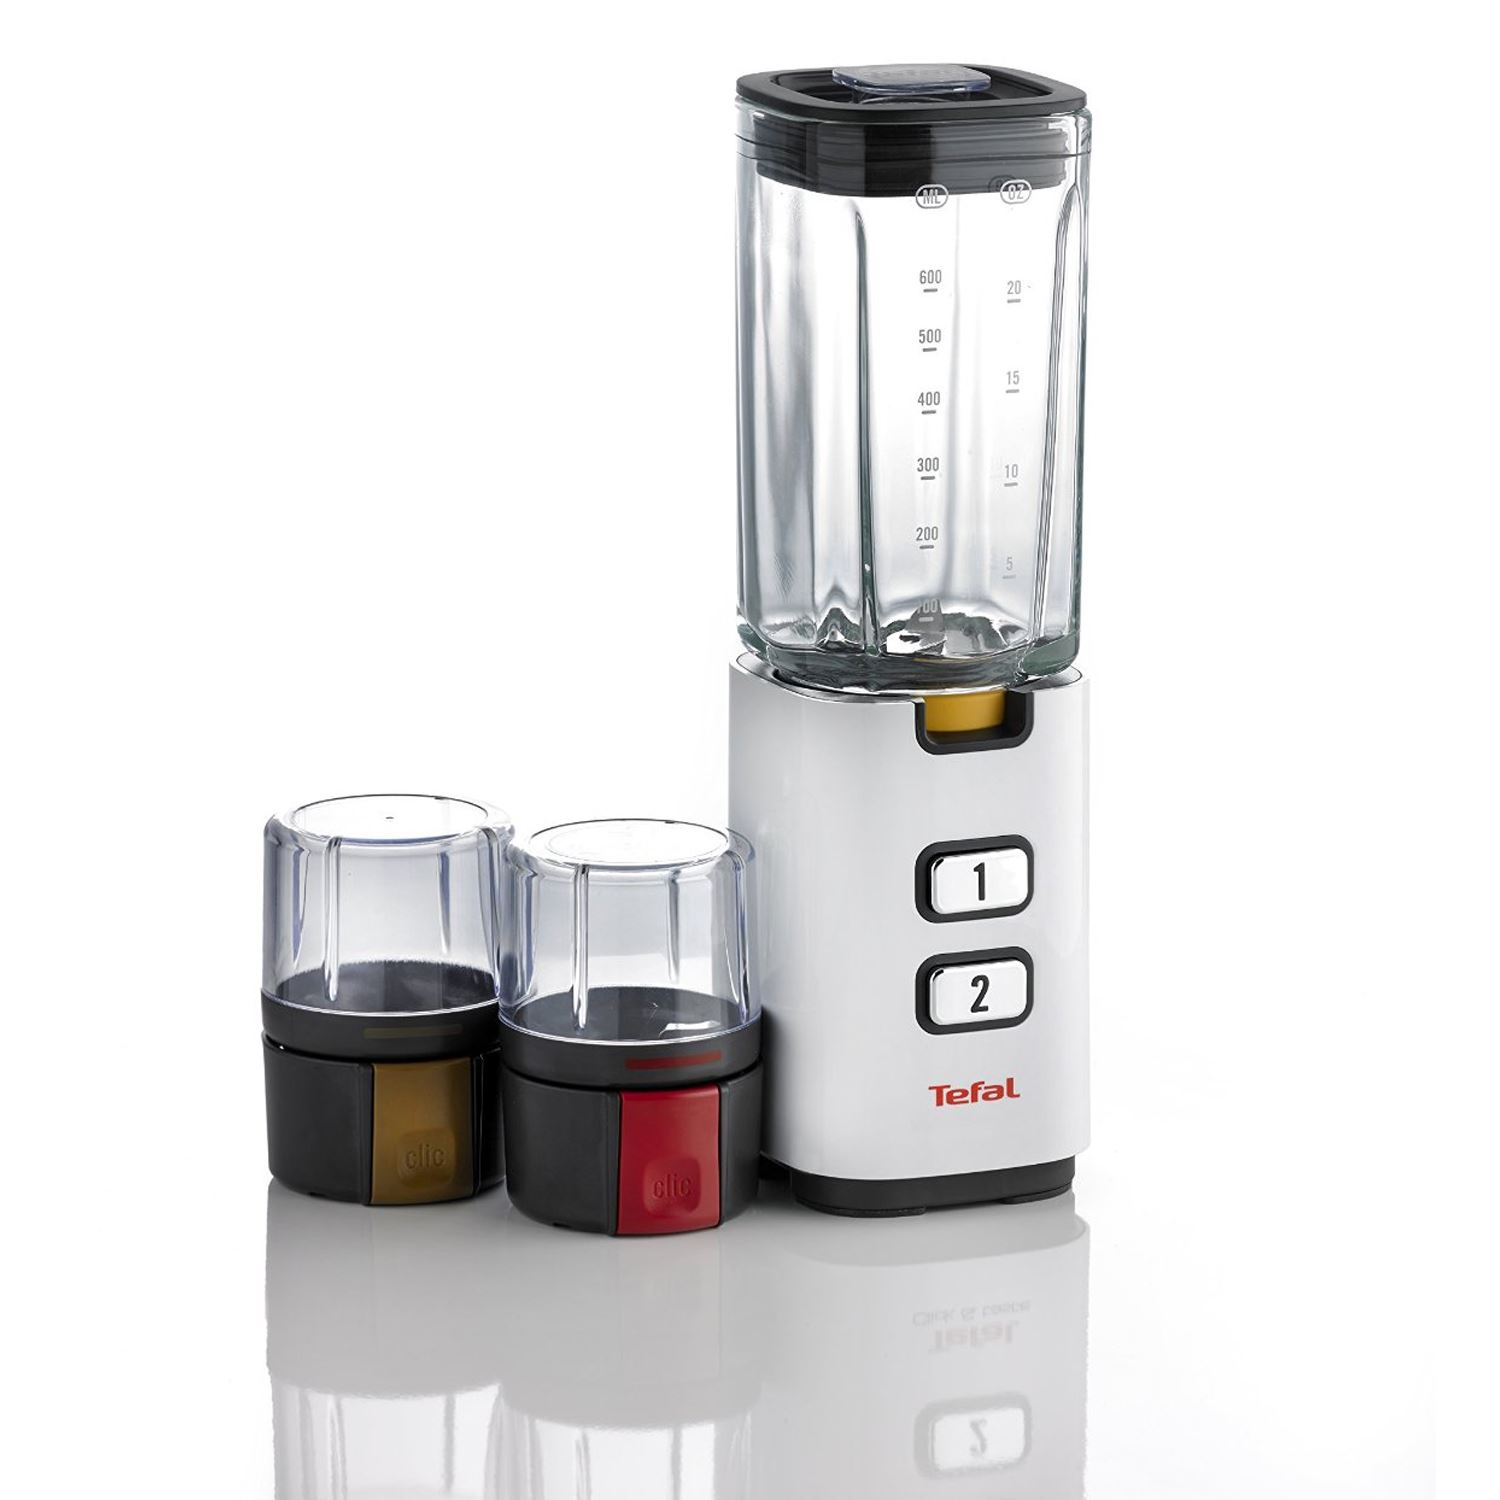 Mini Blender Tefal Bl142140 Mini Blender Mixer Smoothie Maker Juicer